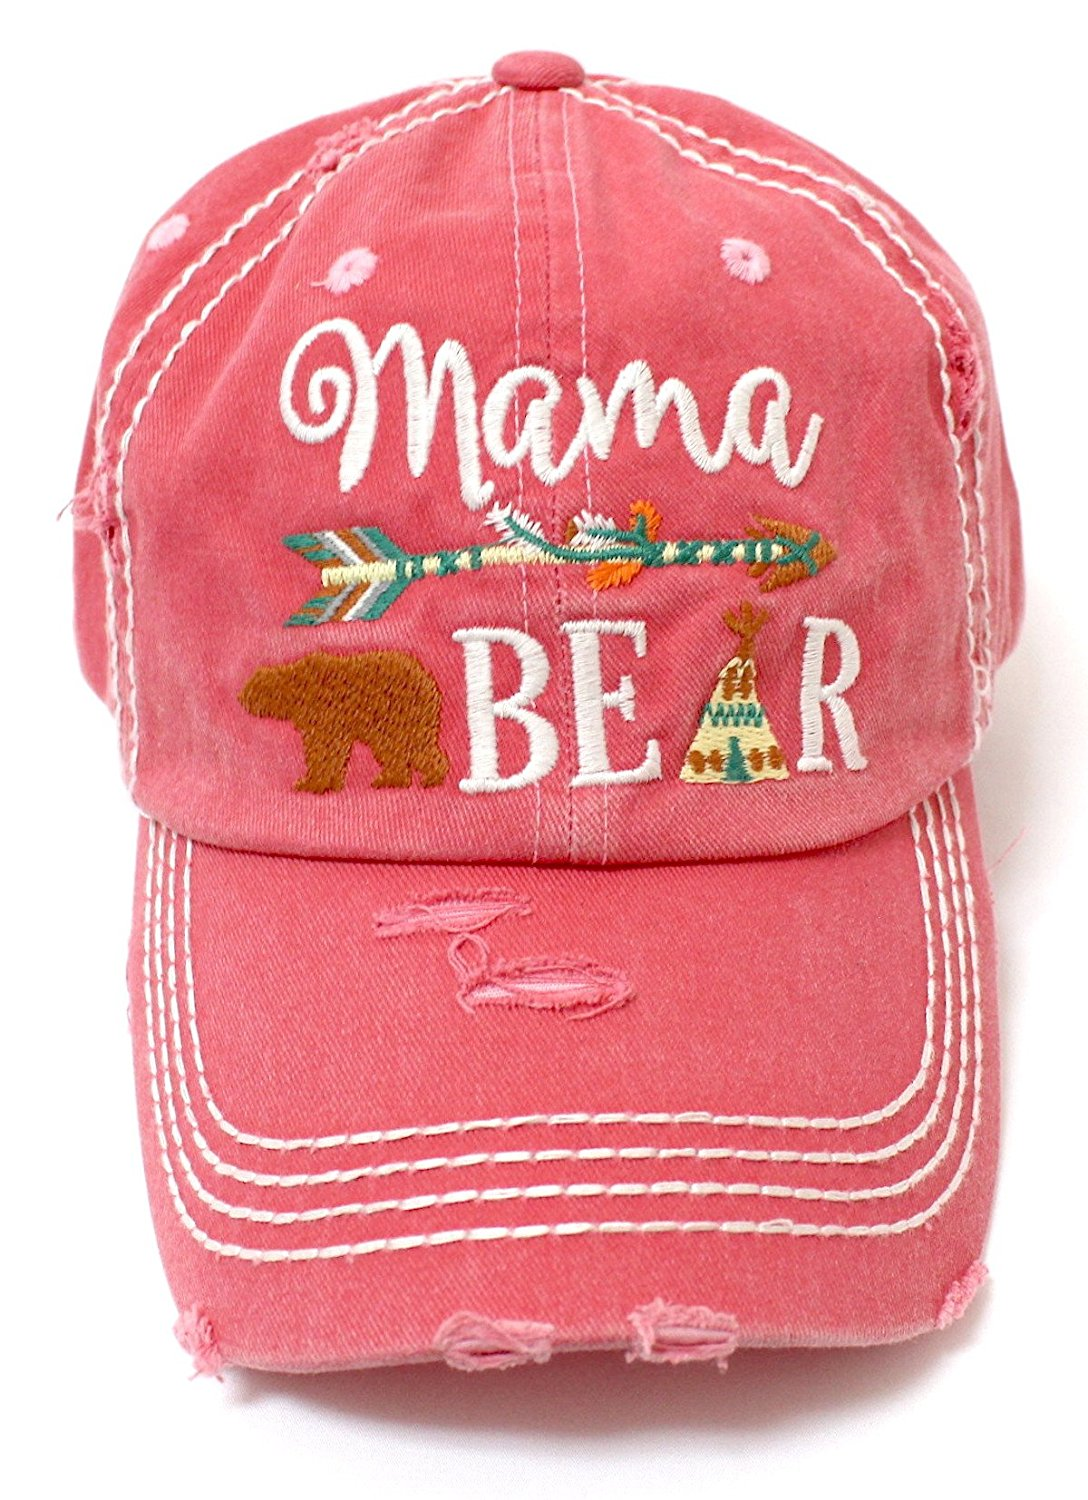 CAPS 'N VINTAGE Mama Bear Indian Teepee Themed Distressed Cap - Caps 'N Vintage